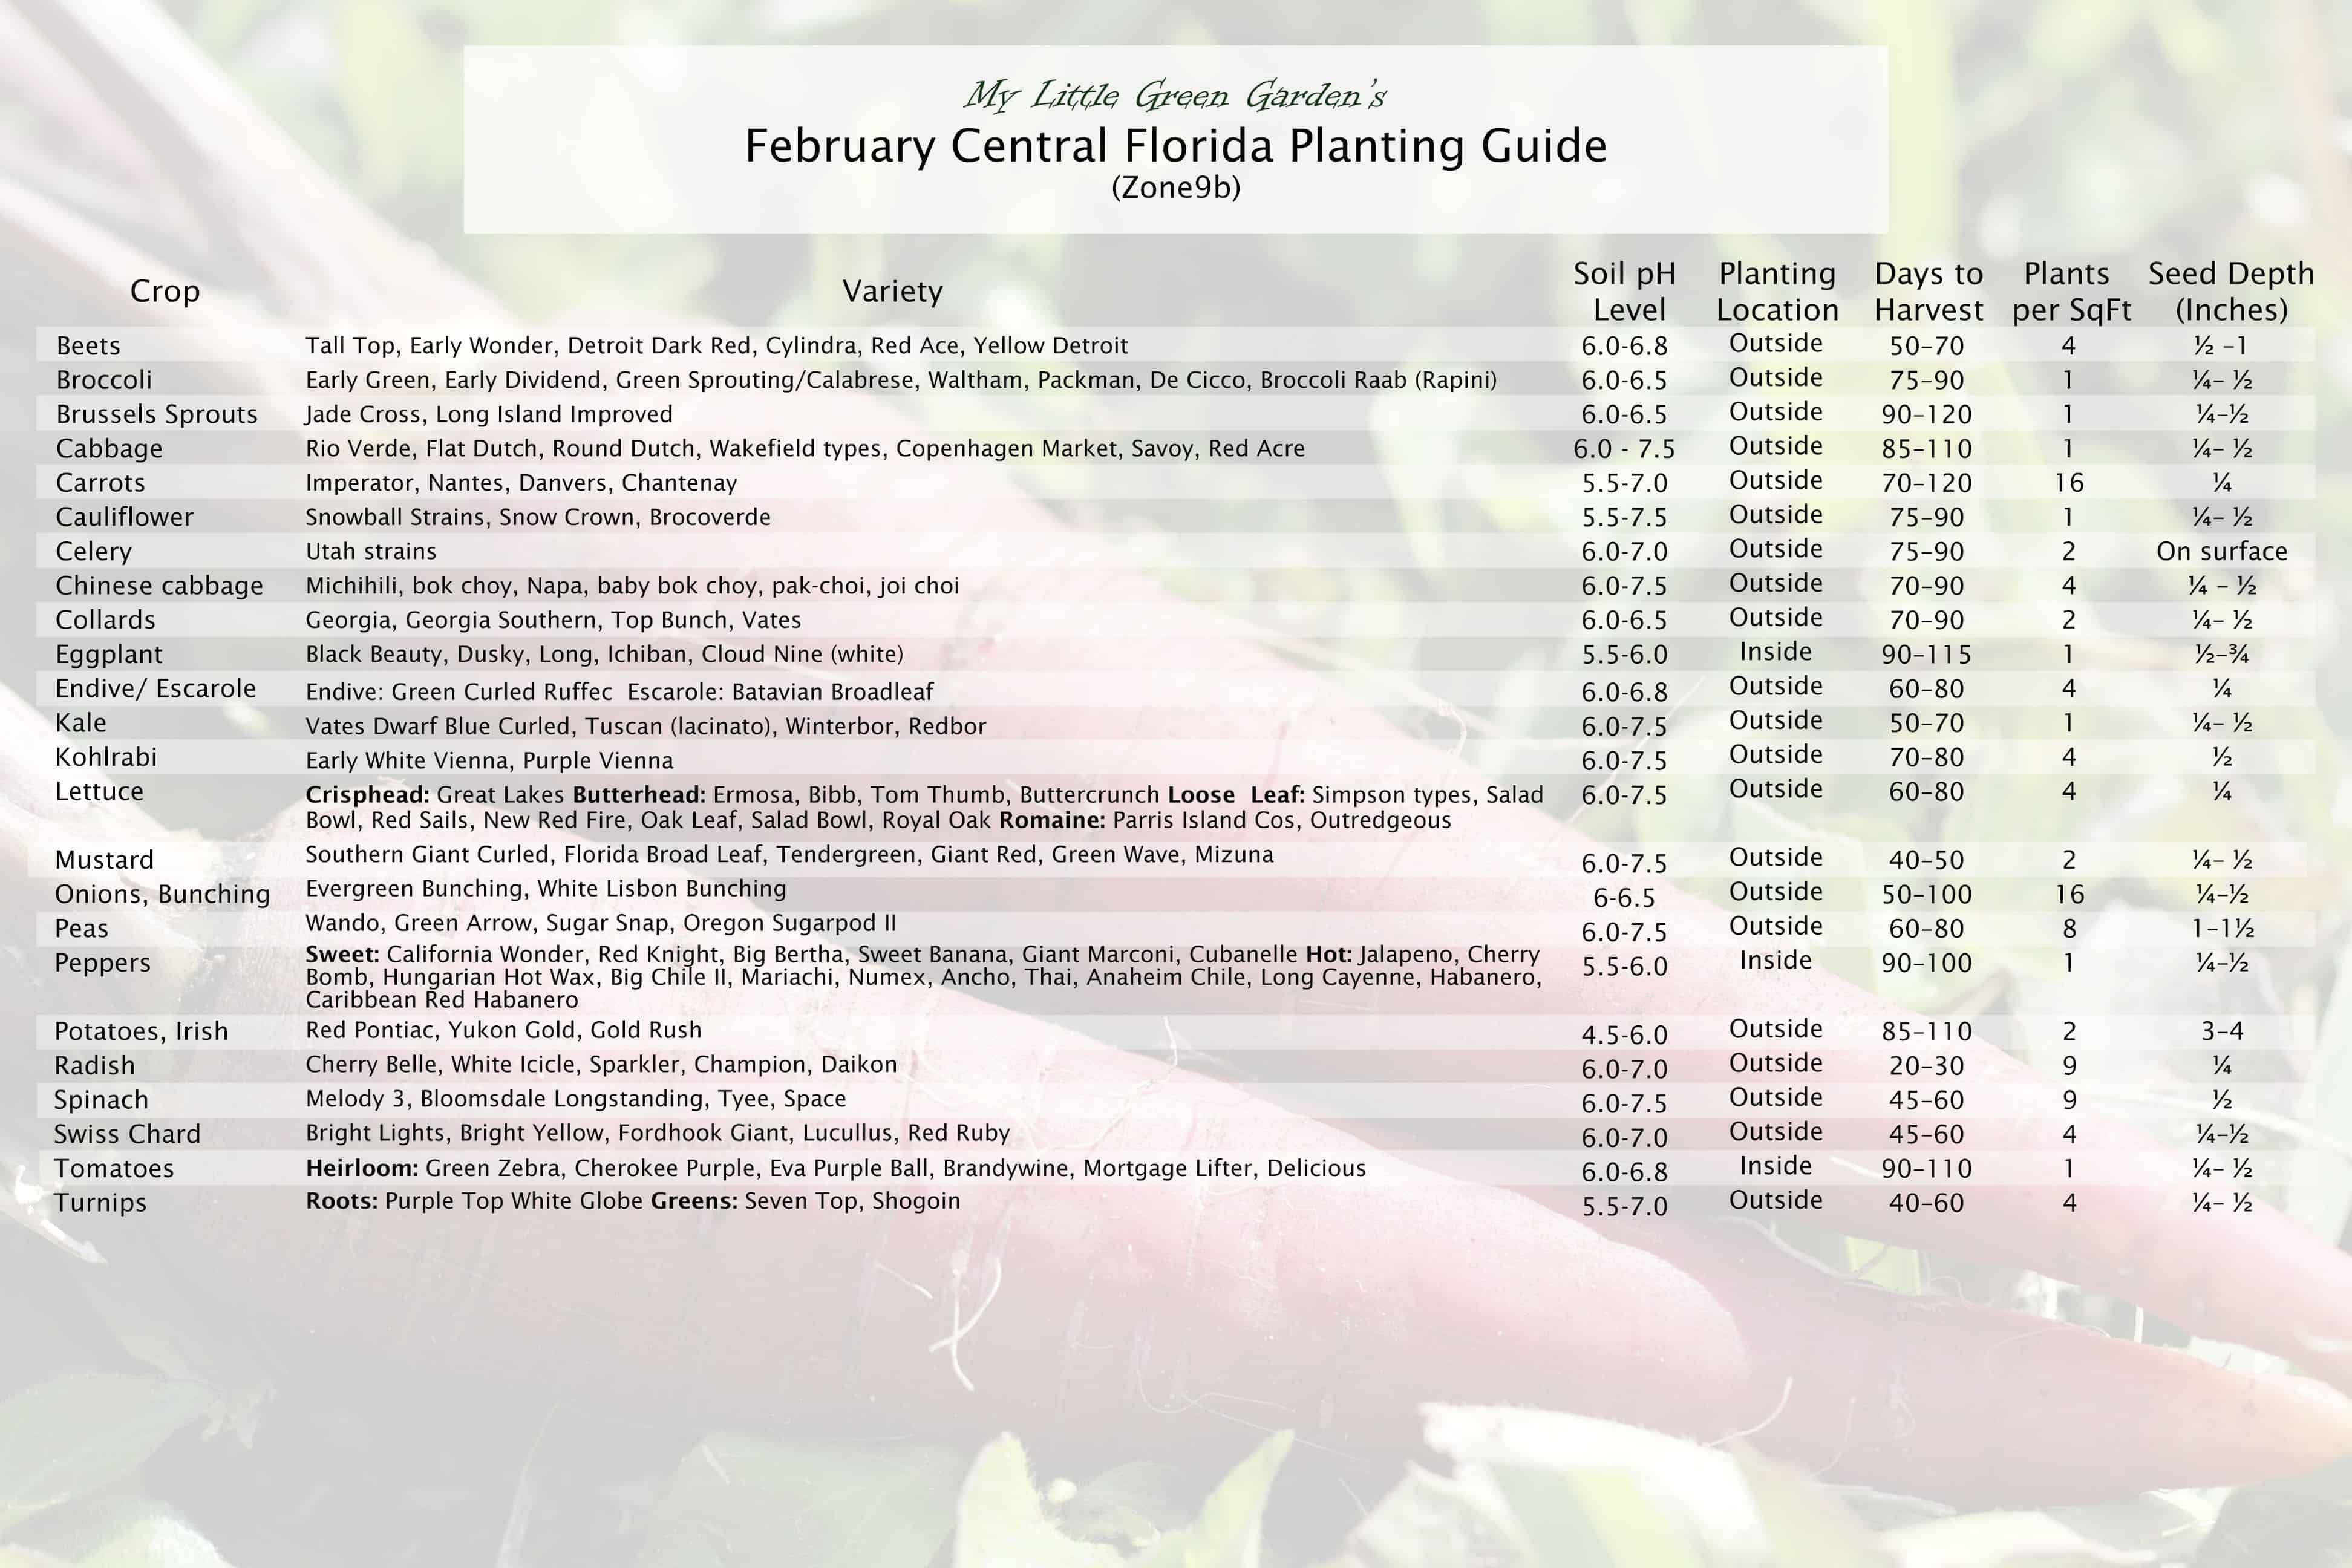 February Vegetable Planting Guide for Central Florida